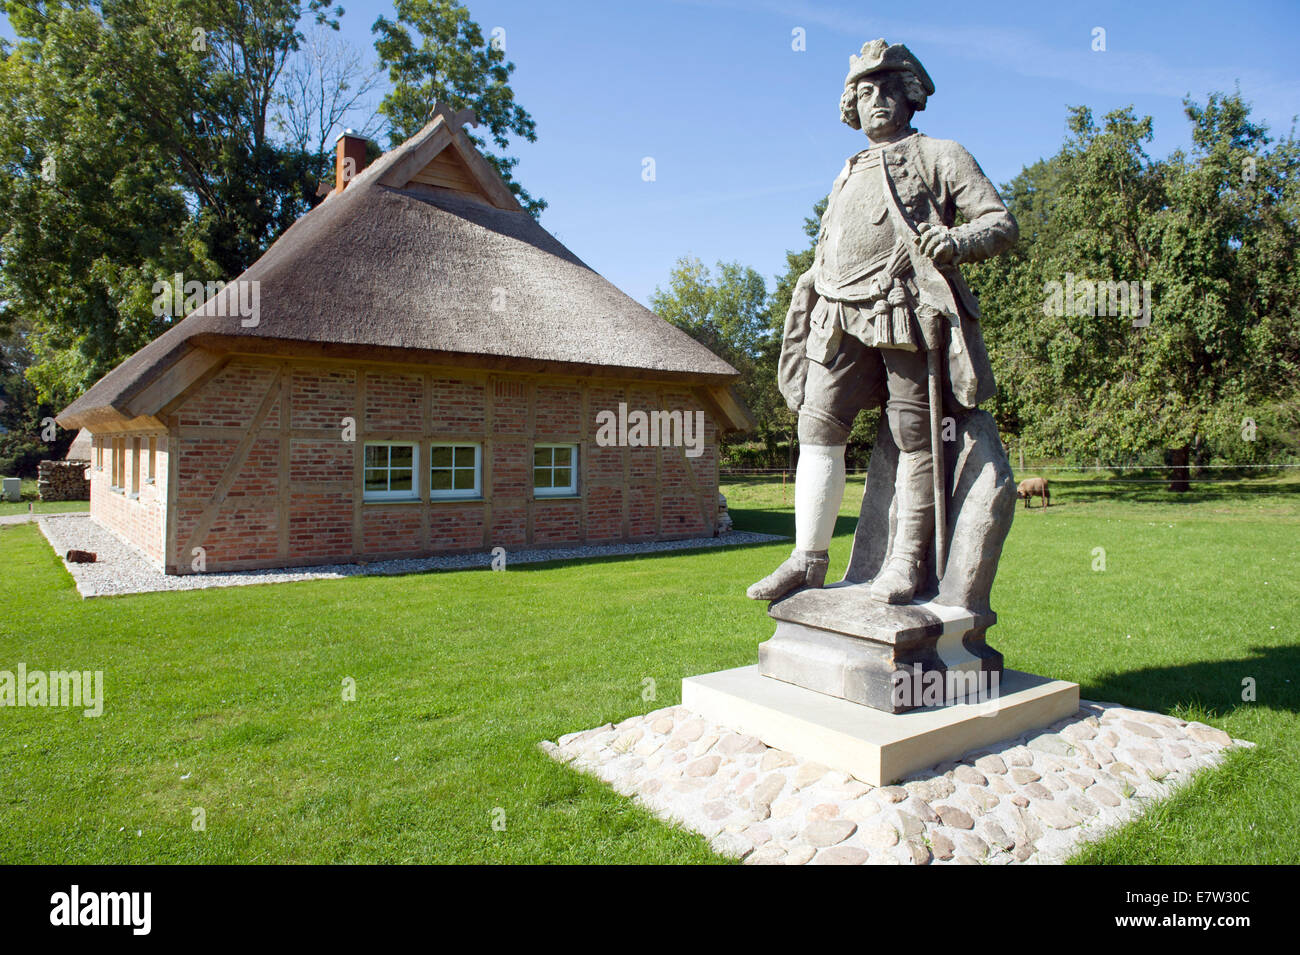 Gross Stresow, Germany. 17th Sep, 2014. The sculpture of Prussian King Friedrich Wilhelm I in front of the traitor's - Stock Image